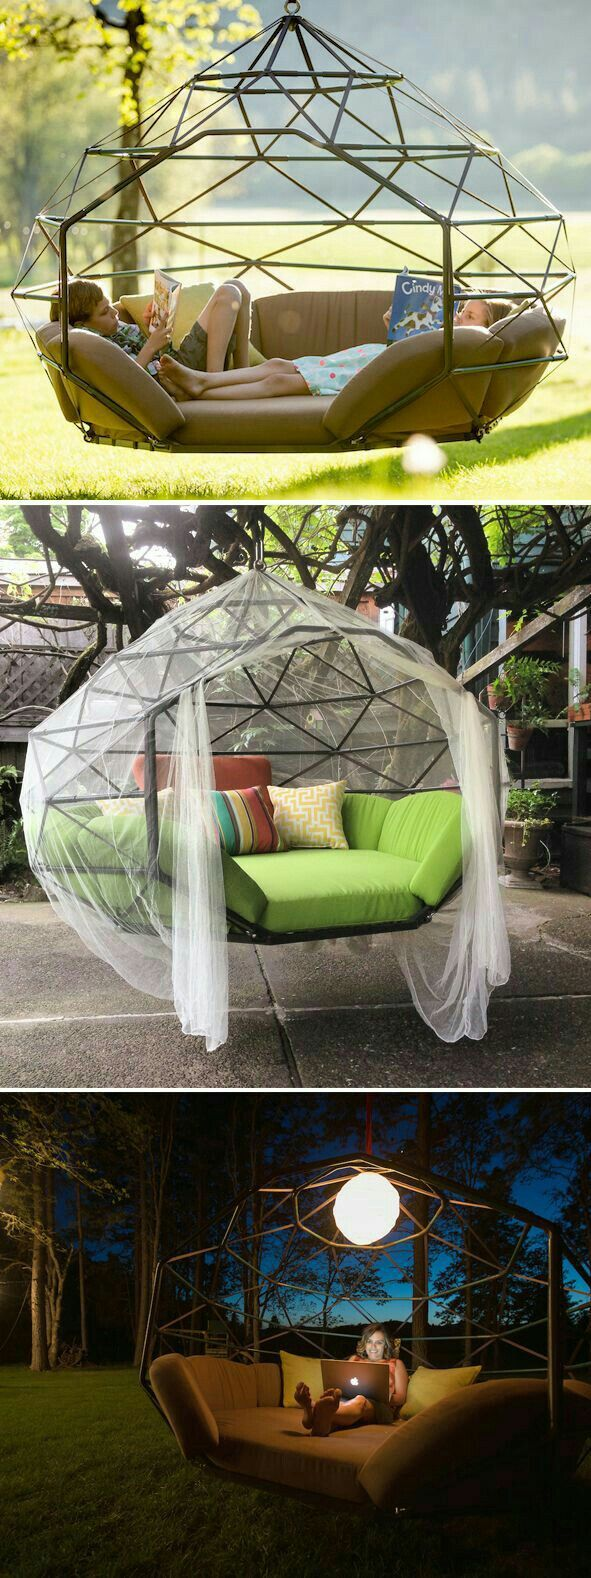 Omgggggggg! I need this so bad. Dunno bout you but I love to read. I think it would be a great little cozy nook to read in.